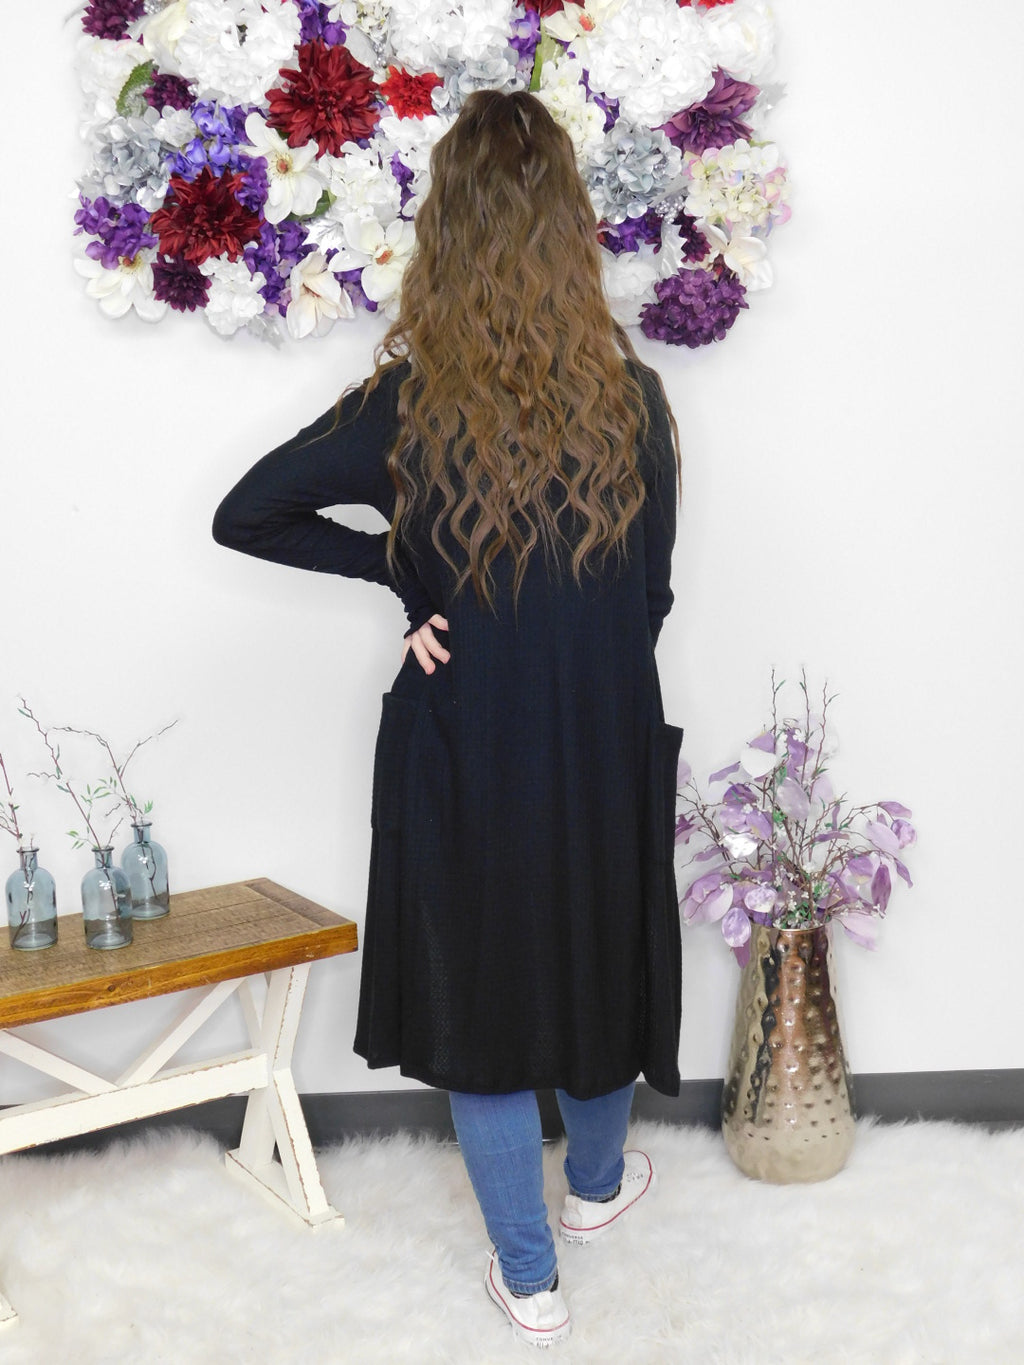 Gonna' Love It Long Cardigan - Black